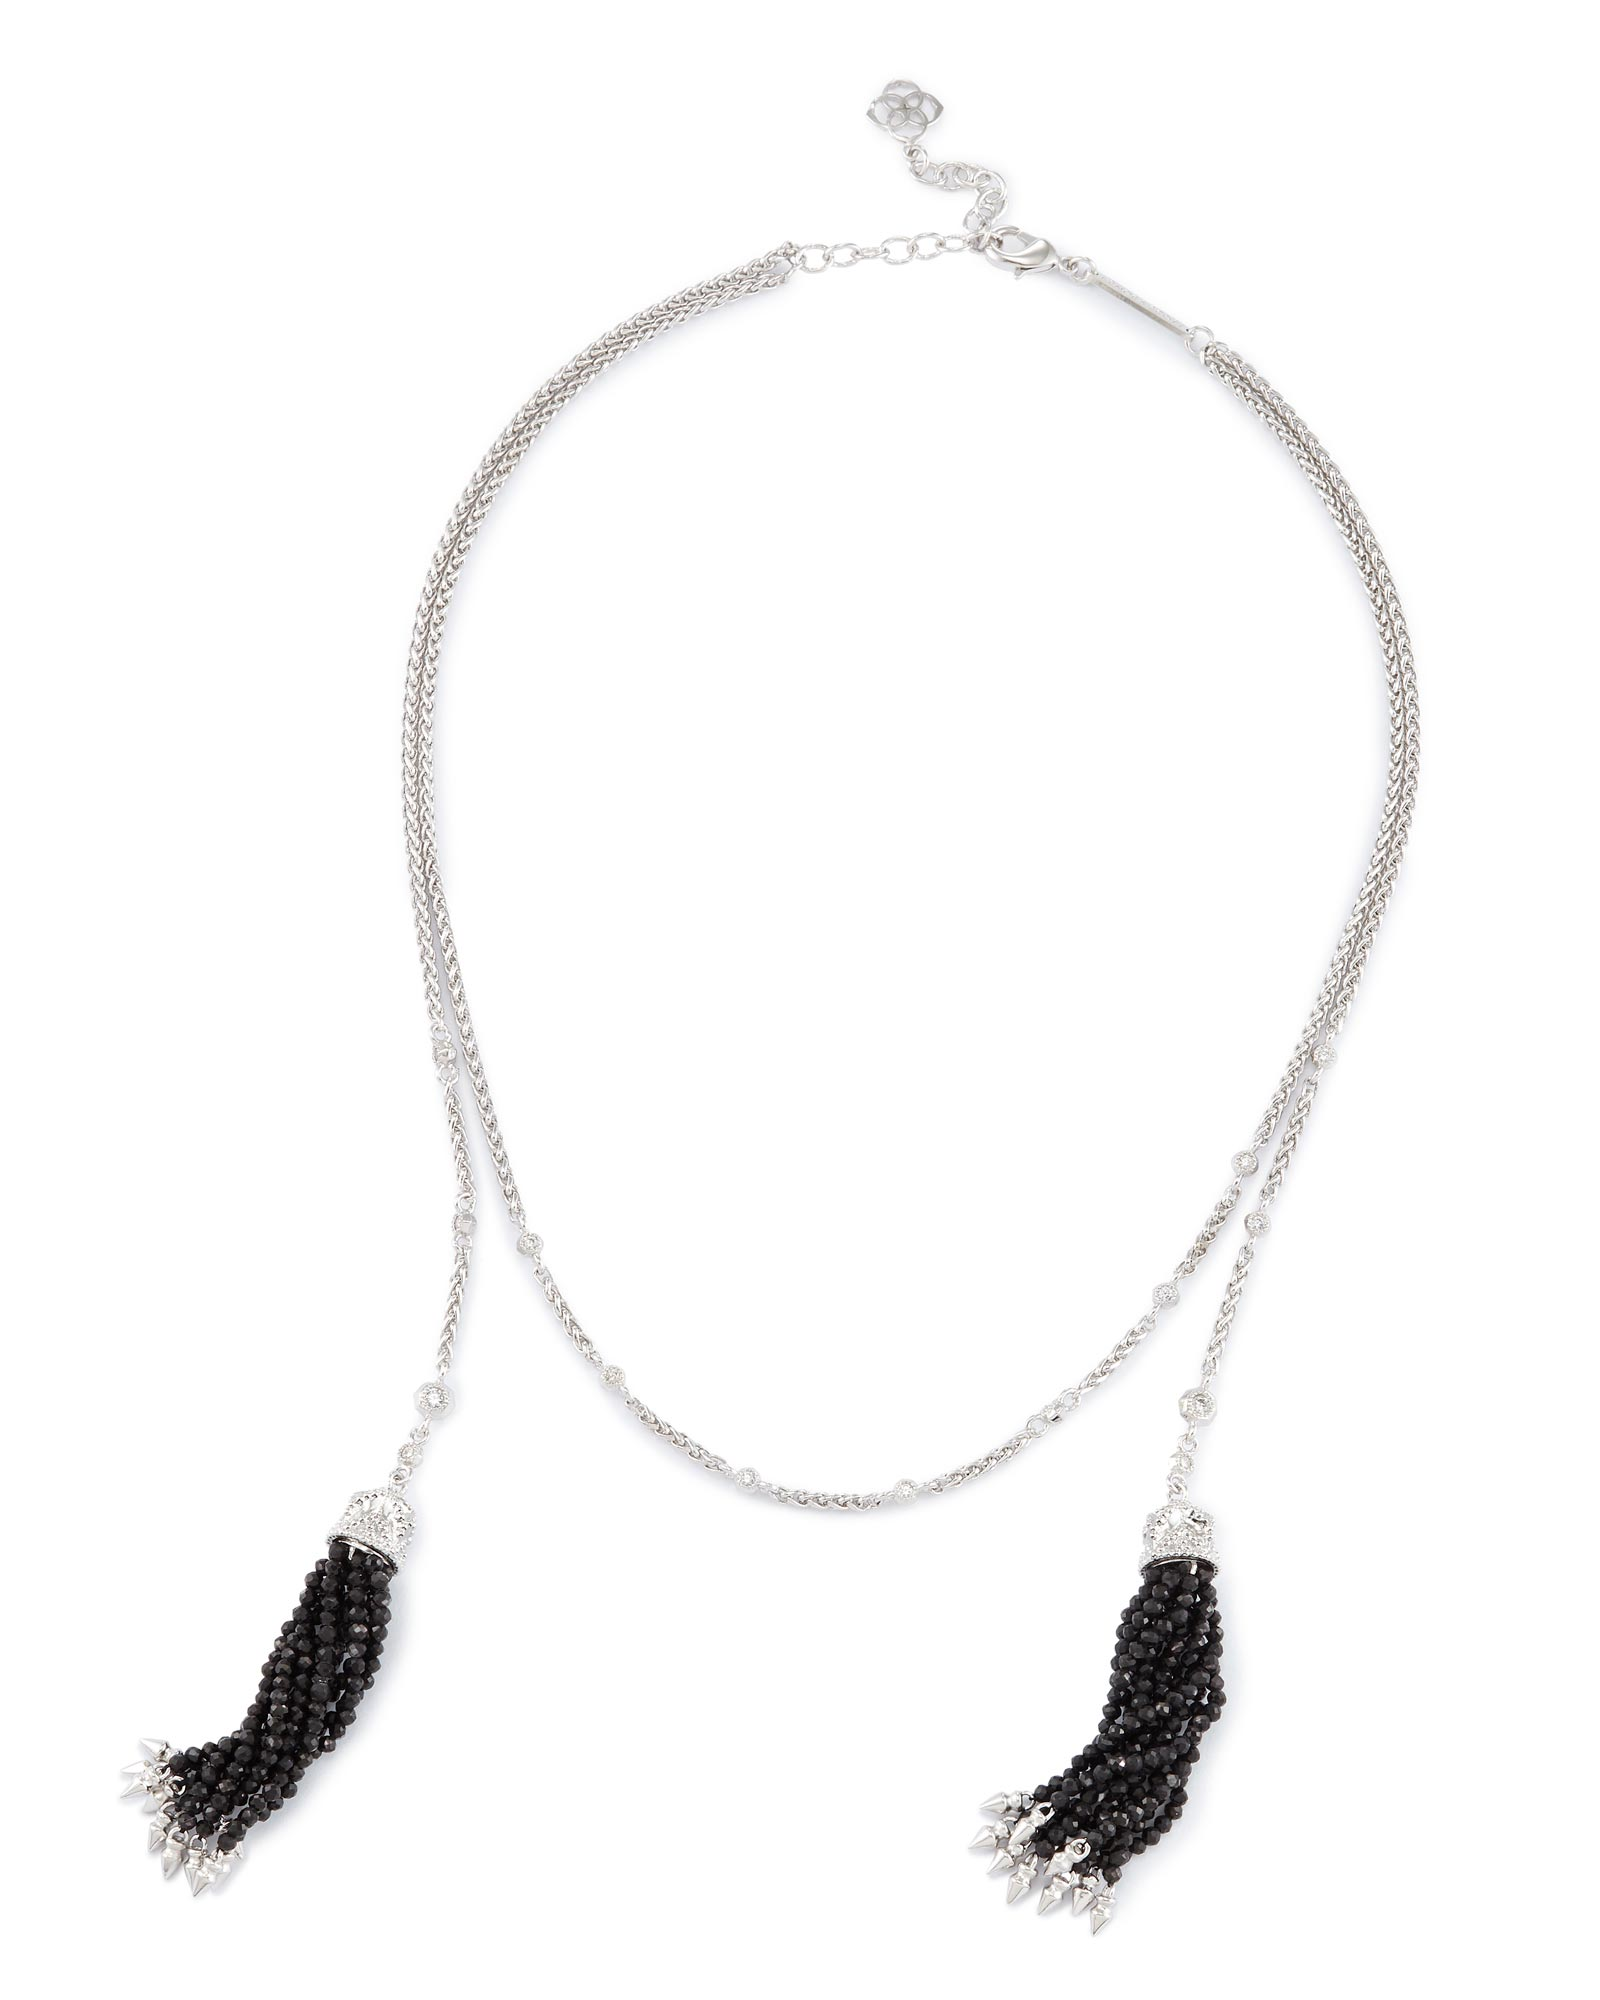 Monique Lariat Necklace in Black Pearl